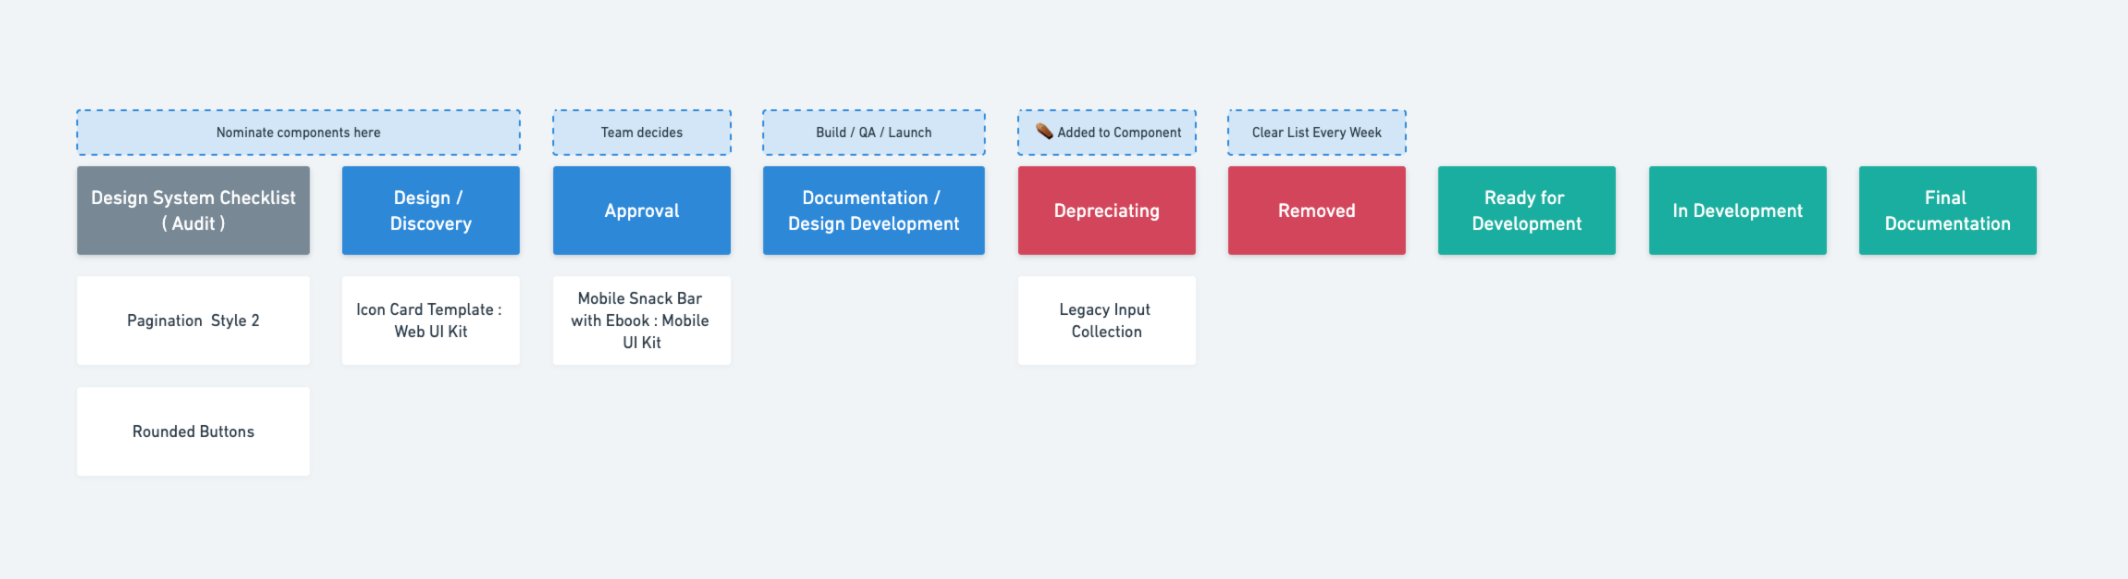 screenshot of design system project board